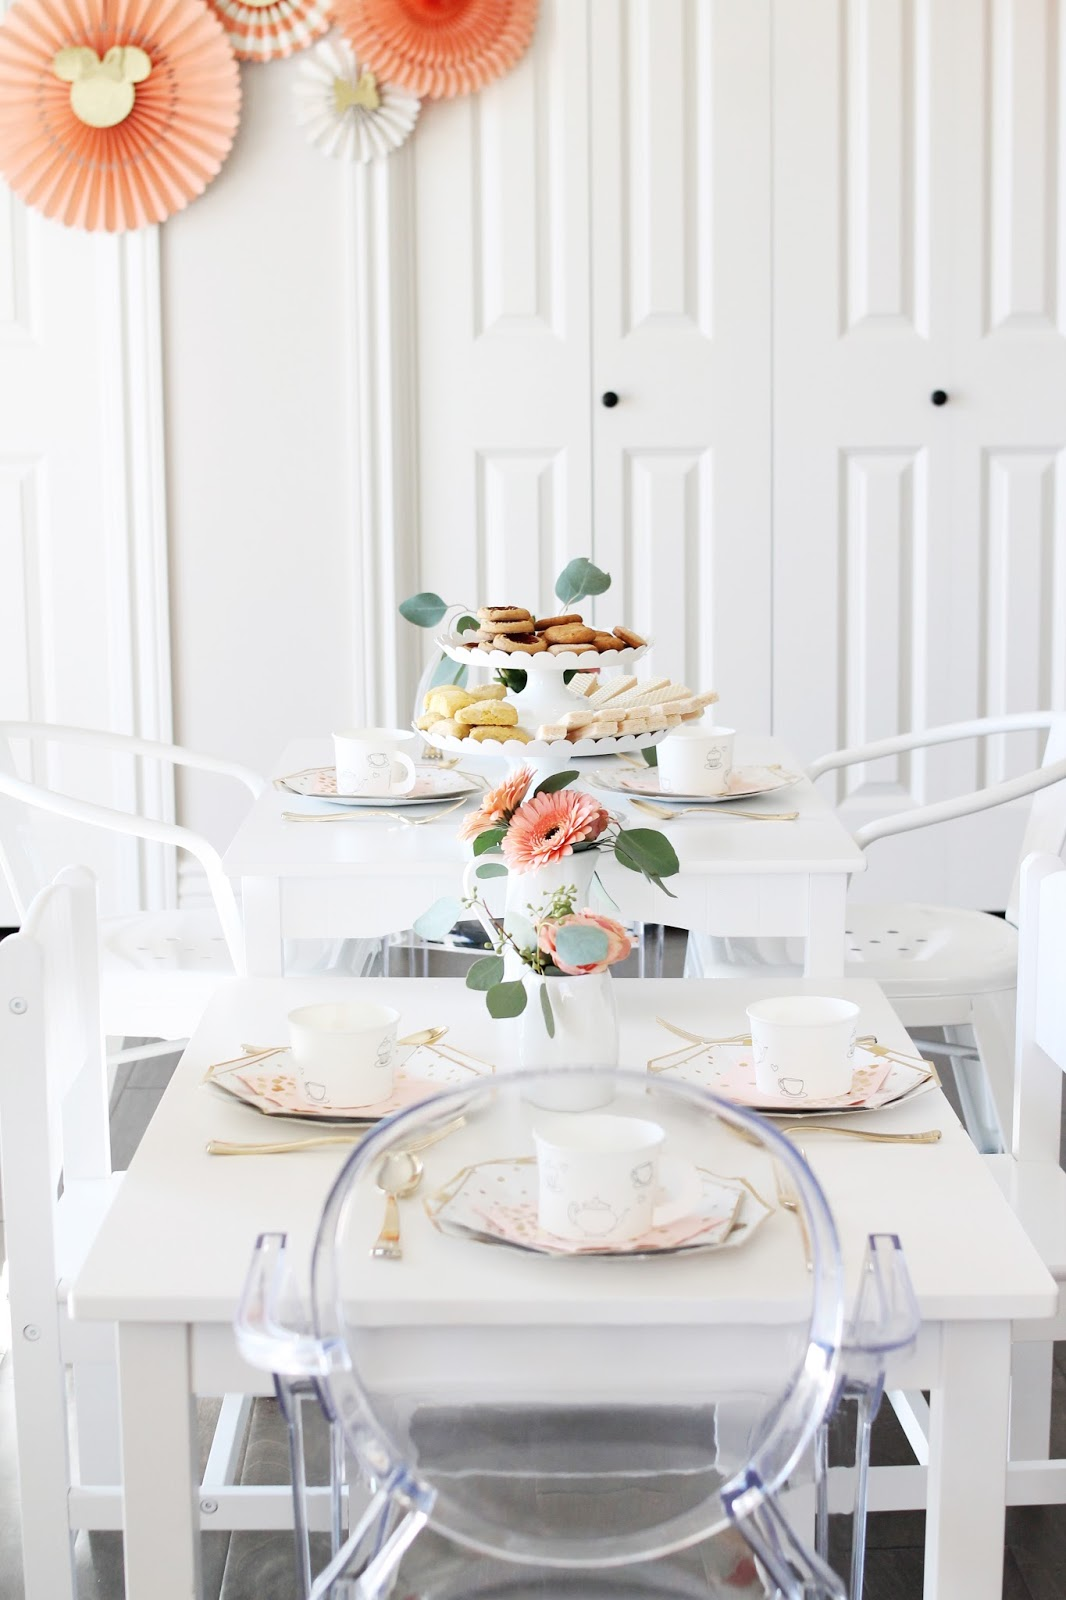 Kids tea party table - I Set Up Some Kids Play Tables And Chairs For A Little Tea Party Table All The Kids Were 4 And Under So We Kept Things Really Simple With These Paper Tea